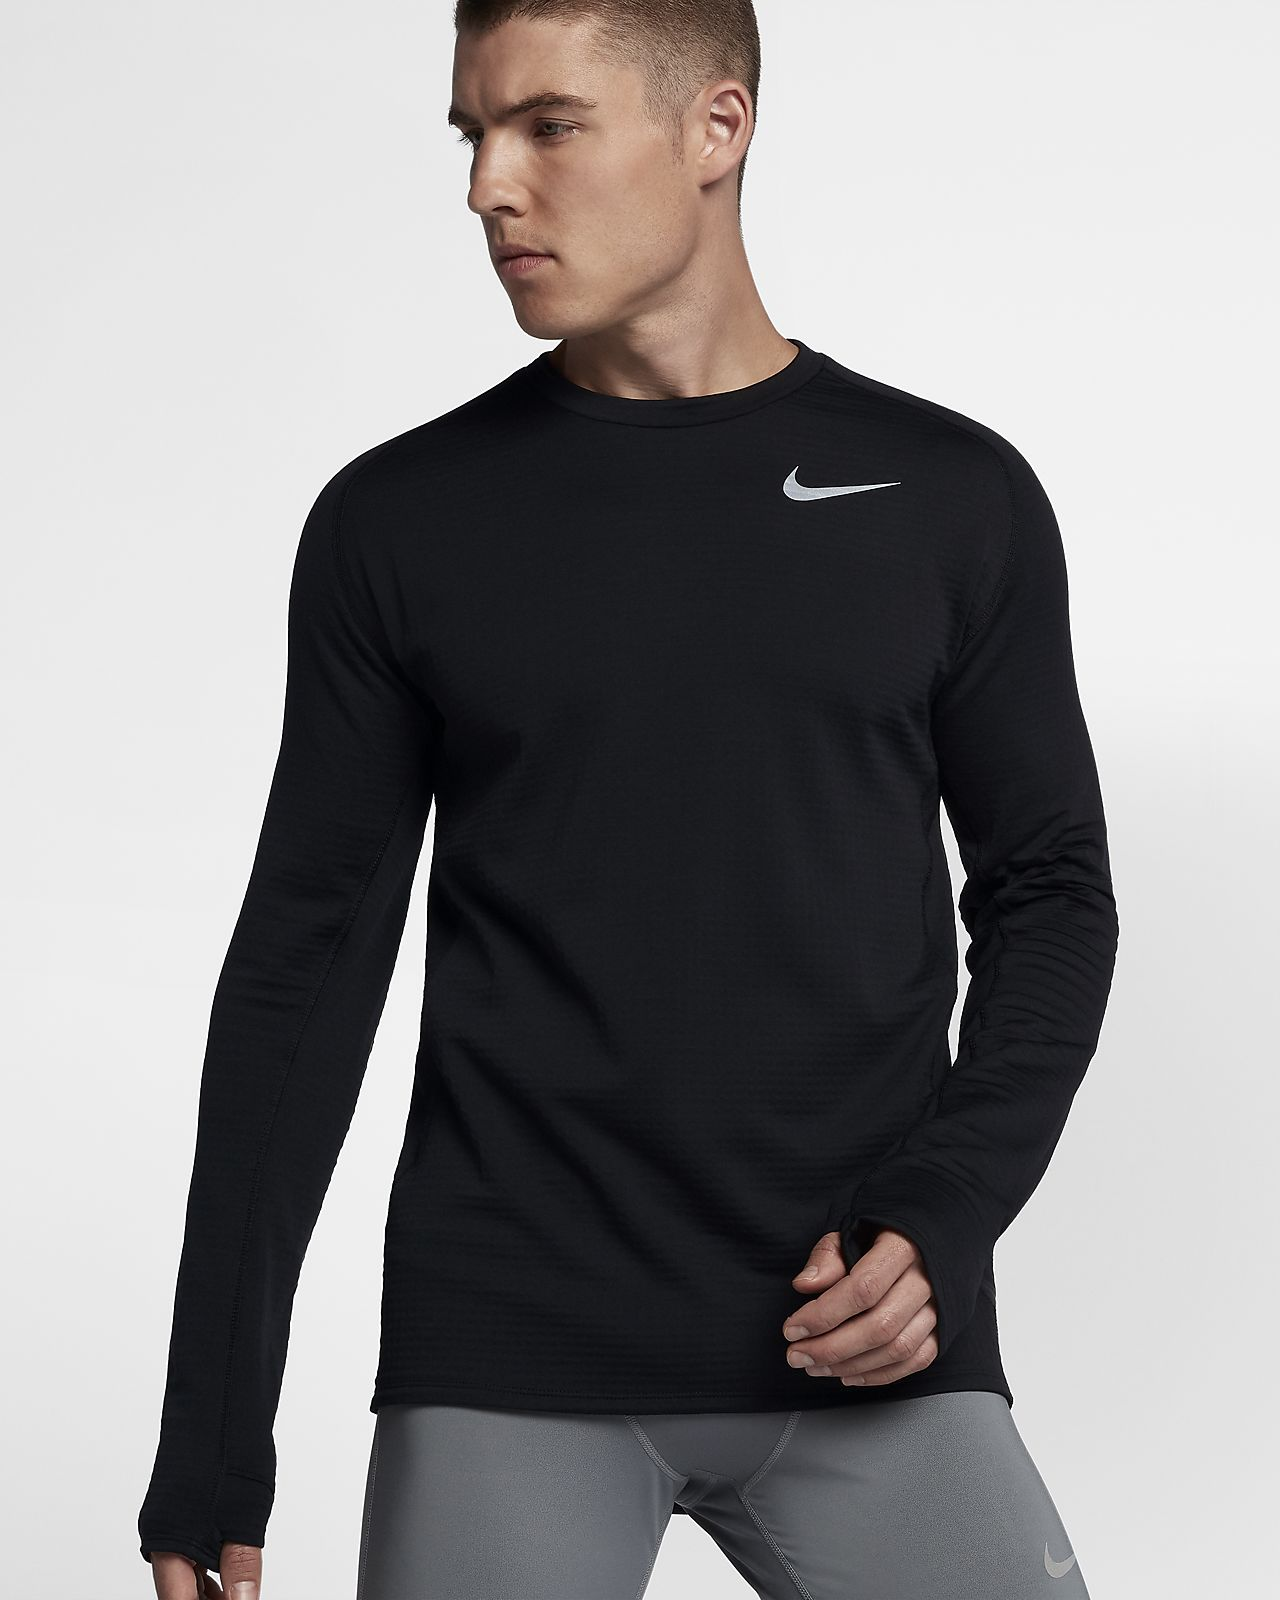 Nike Long Sleeve Running Top unit4motors.co.uk 3f60ff3be